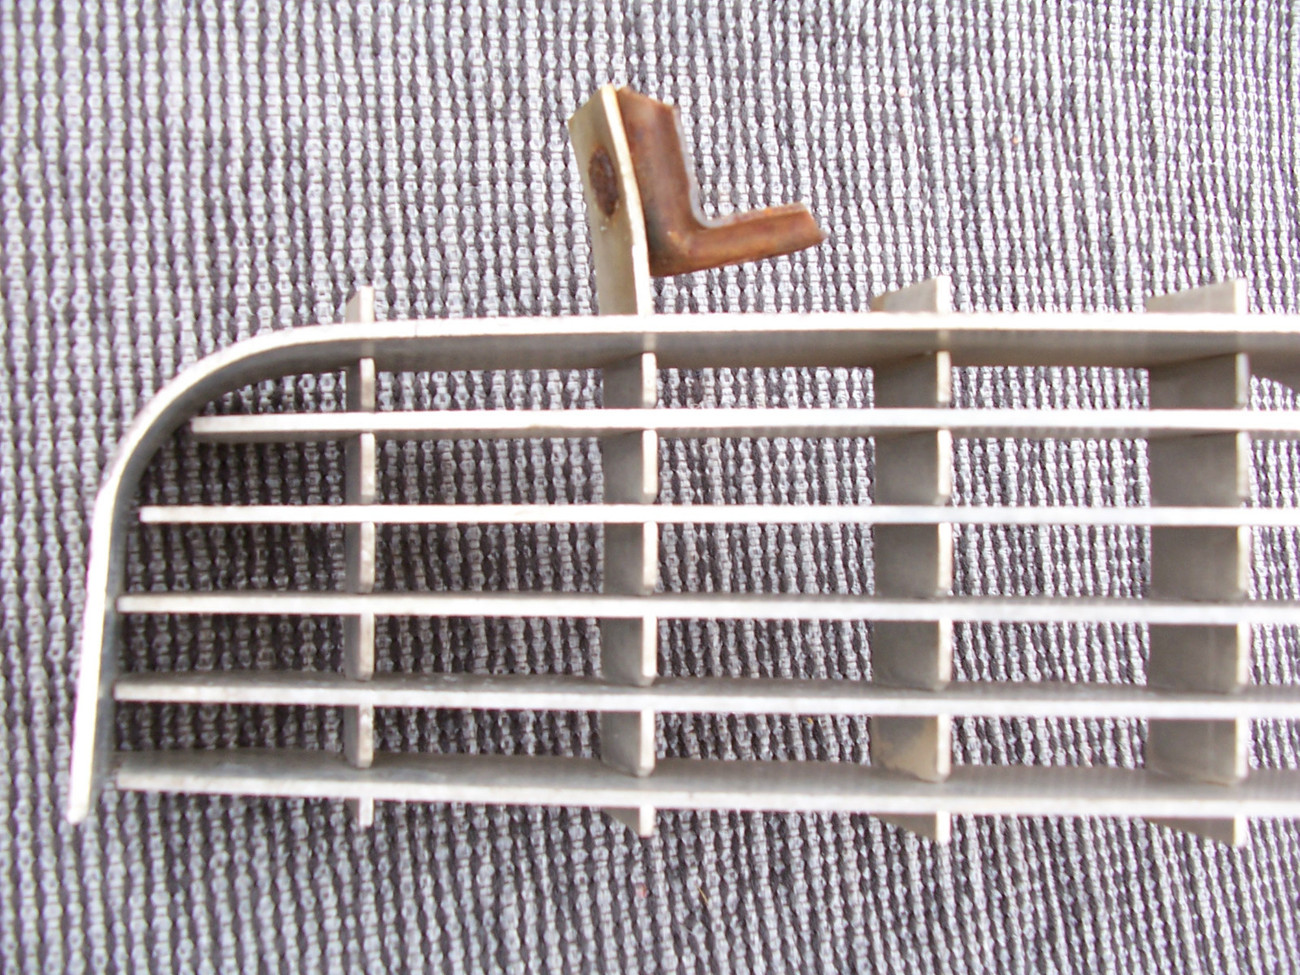 1969 ELDORADO LOWER GRILL OEM USED CADILLAC GRILLE  FRONT SEE PHOTOS